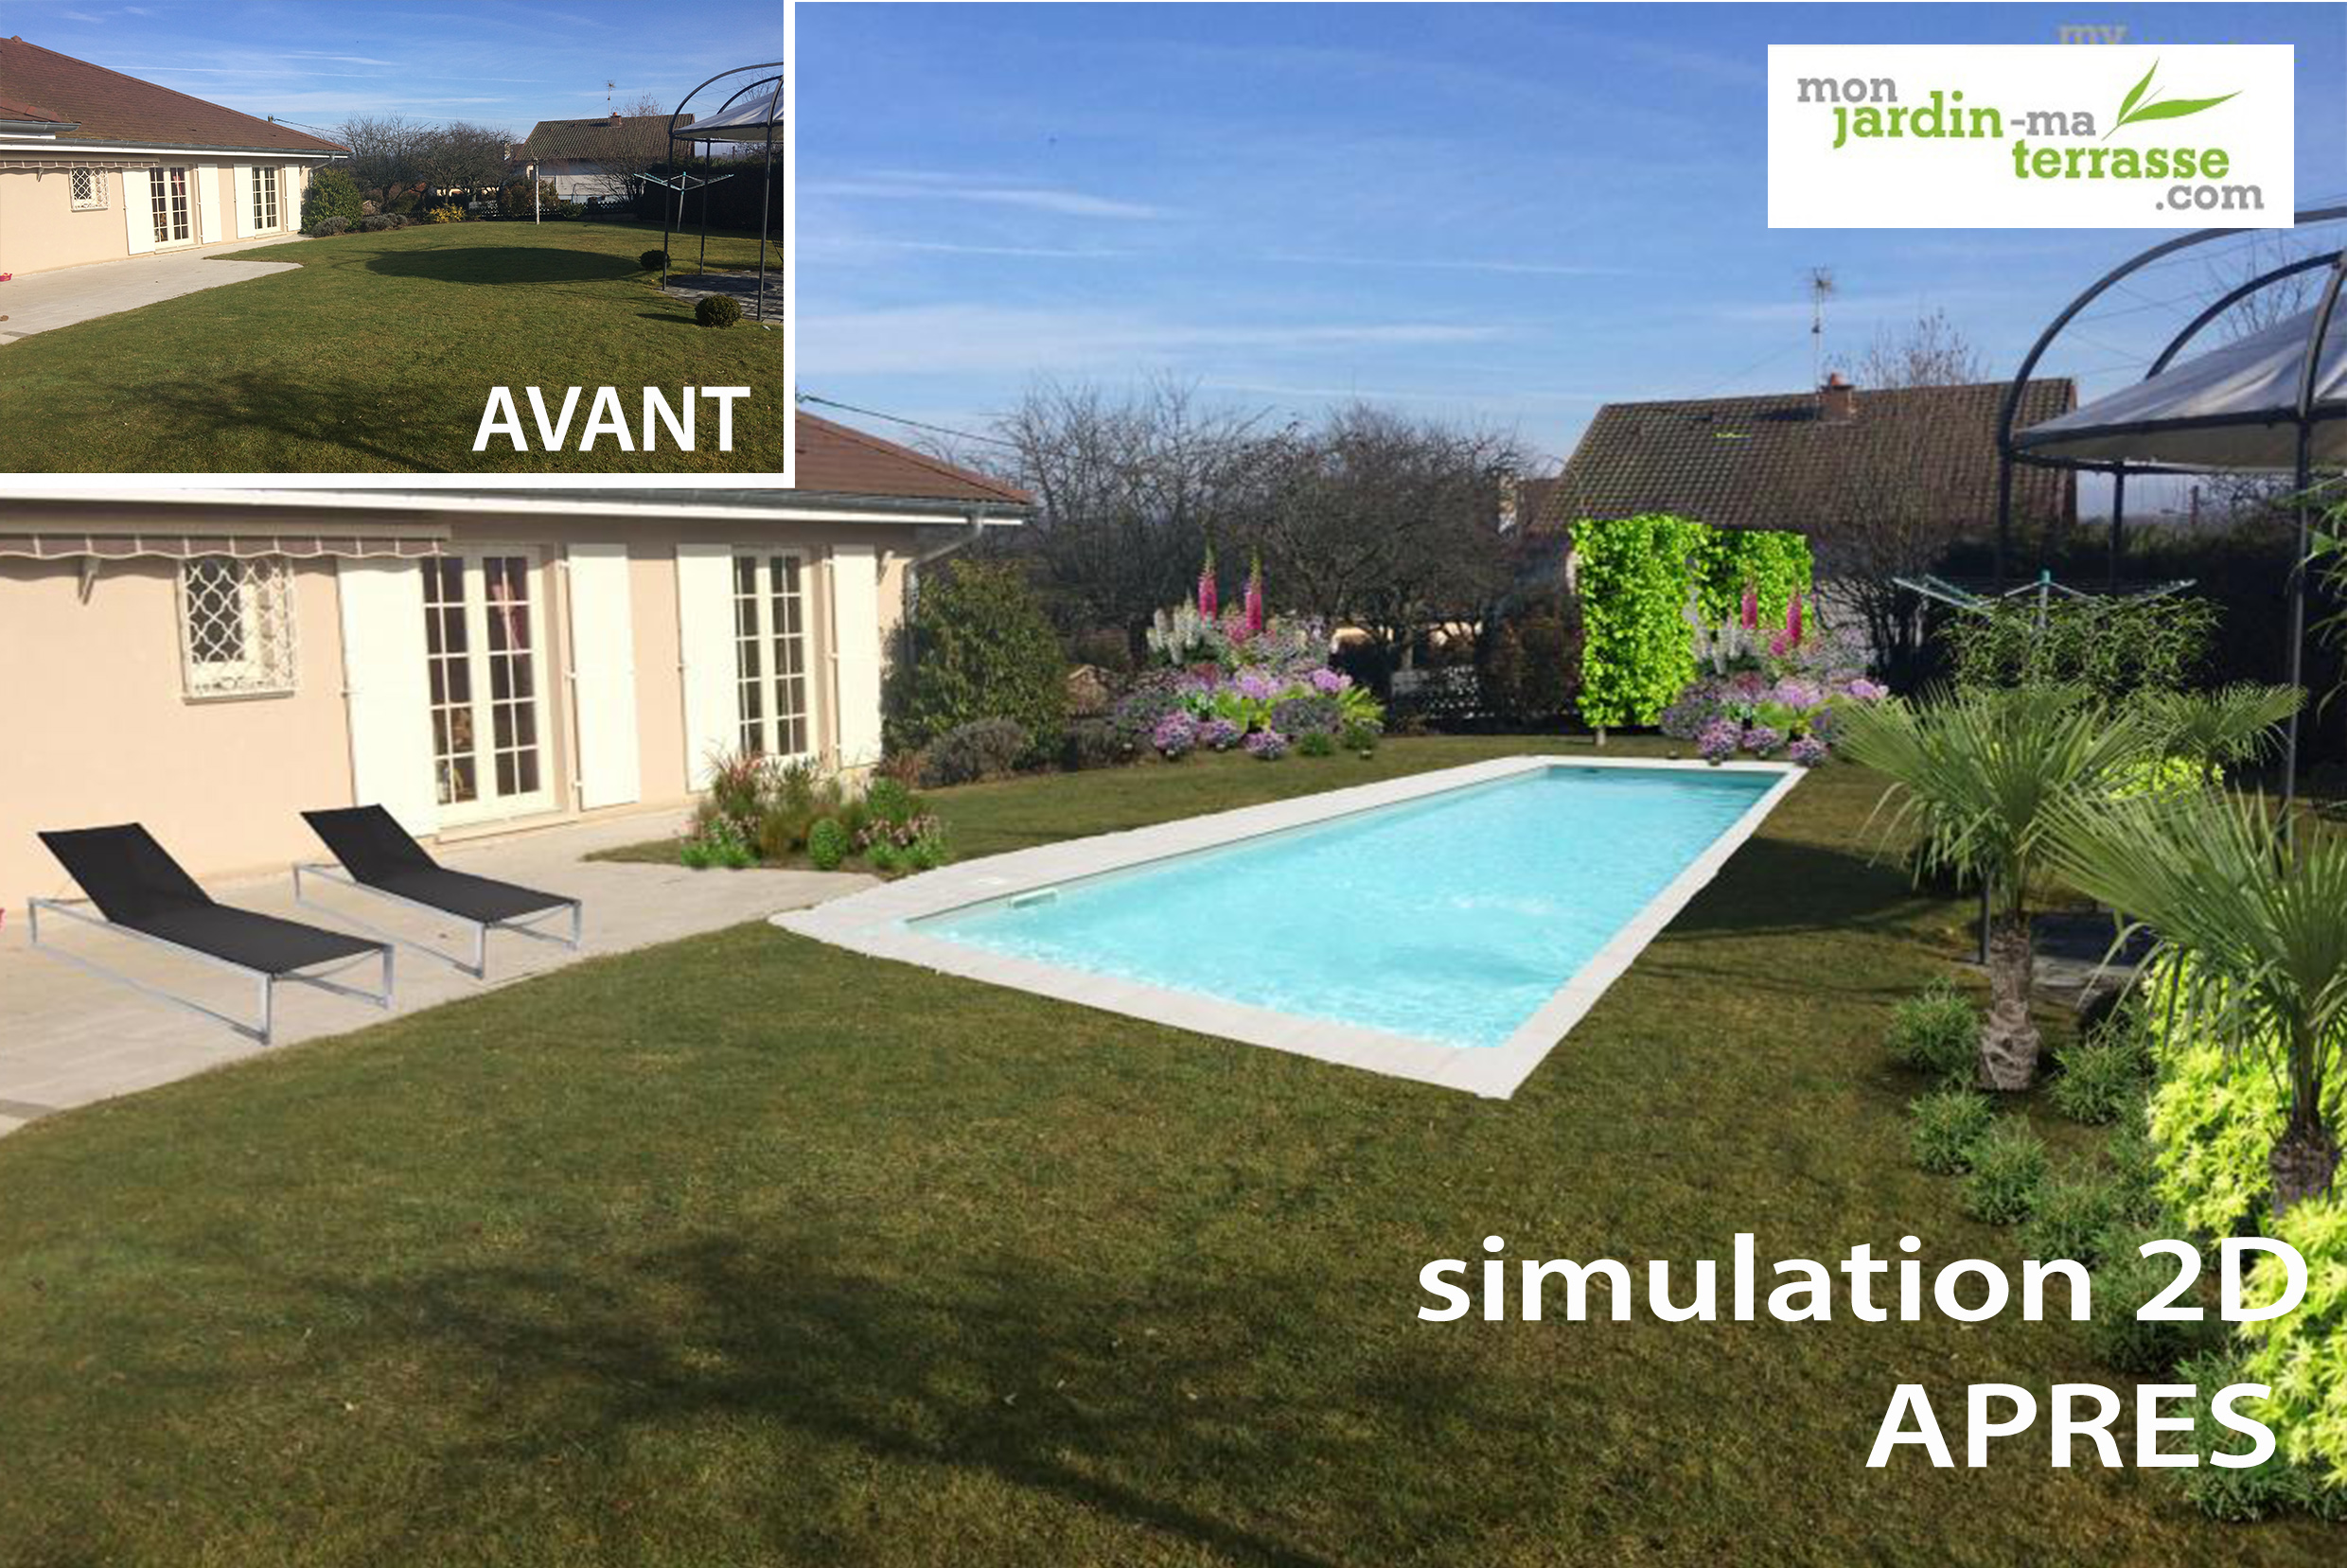 Cr er son jardin virtuel gratuit monjardin for Site amenagement jardin